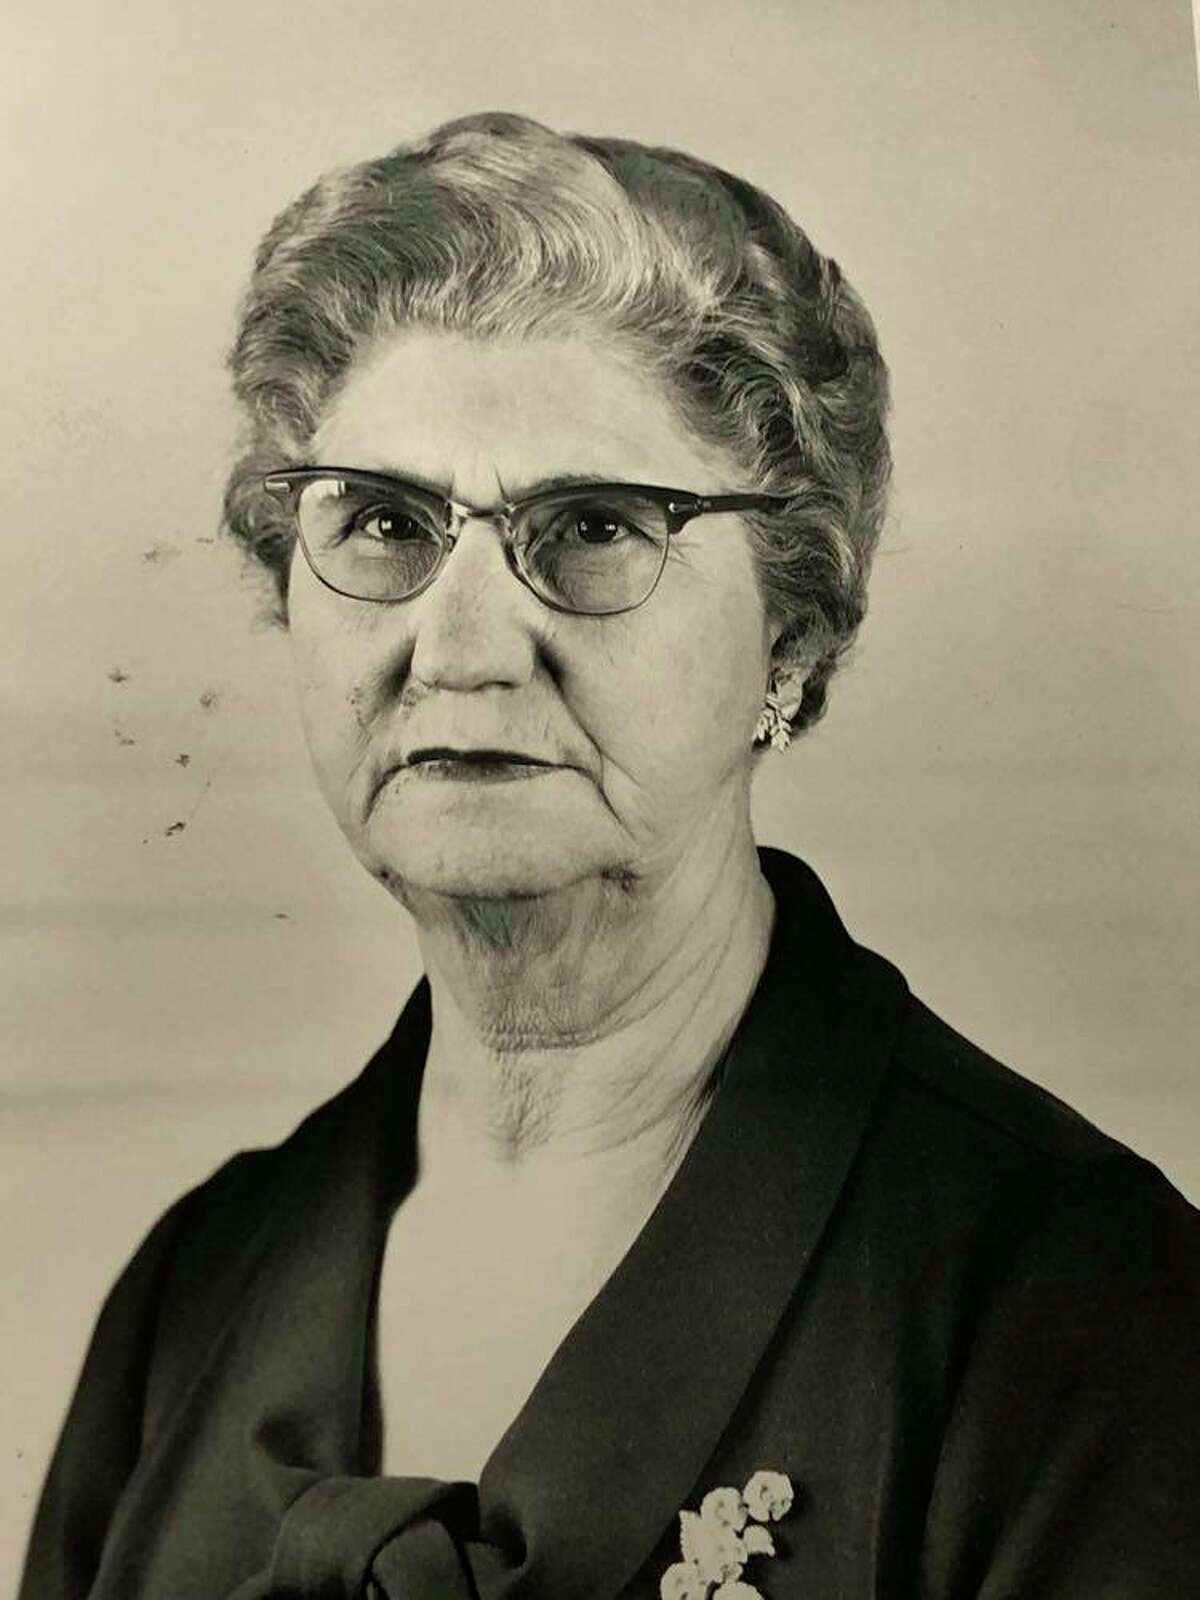 Clara Booth Smith did what hundreds of young people did in her generation. She attended one year of County Normal for a teaching certificate. After raising a family, she returned to teaching, earning a four-year degree and a master's degree. Through the years, she touched the lives of hundreds of boys and girls in Midland County.